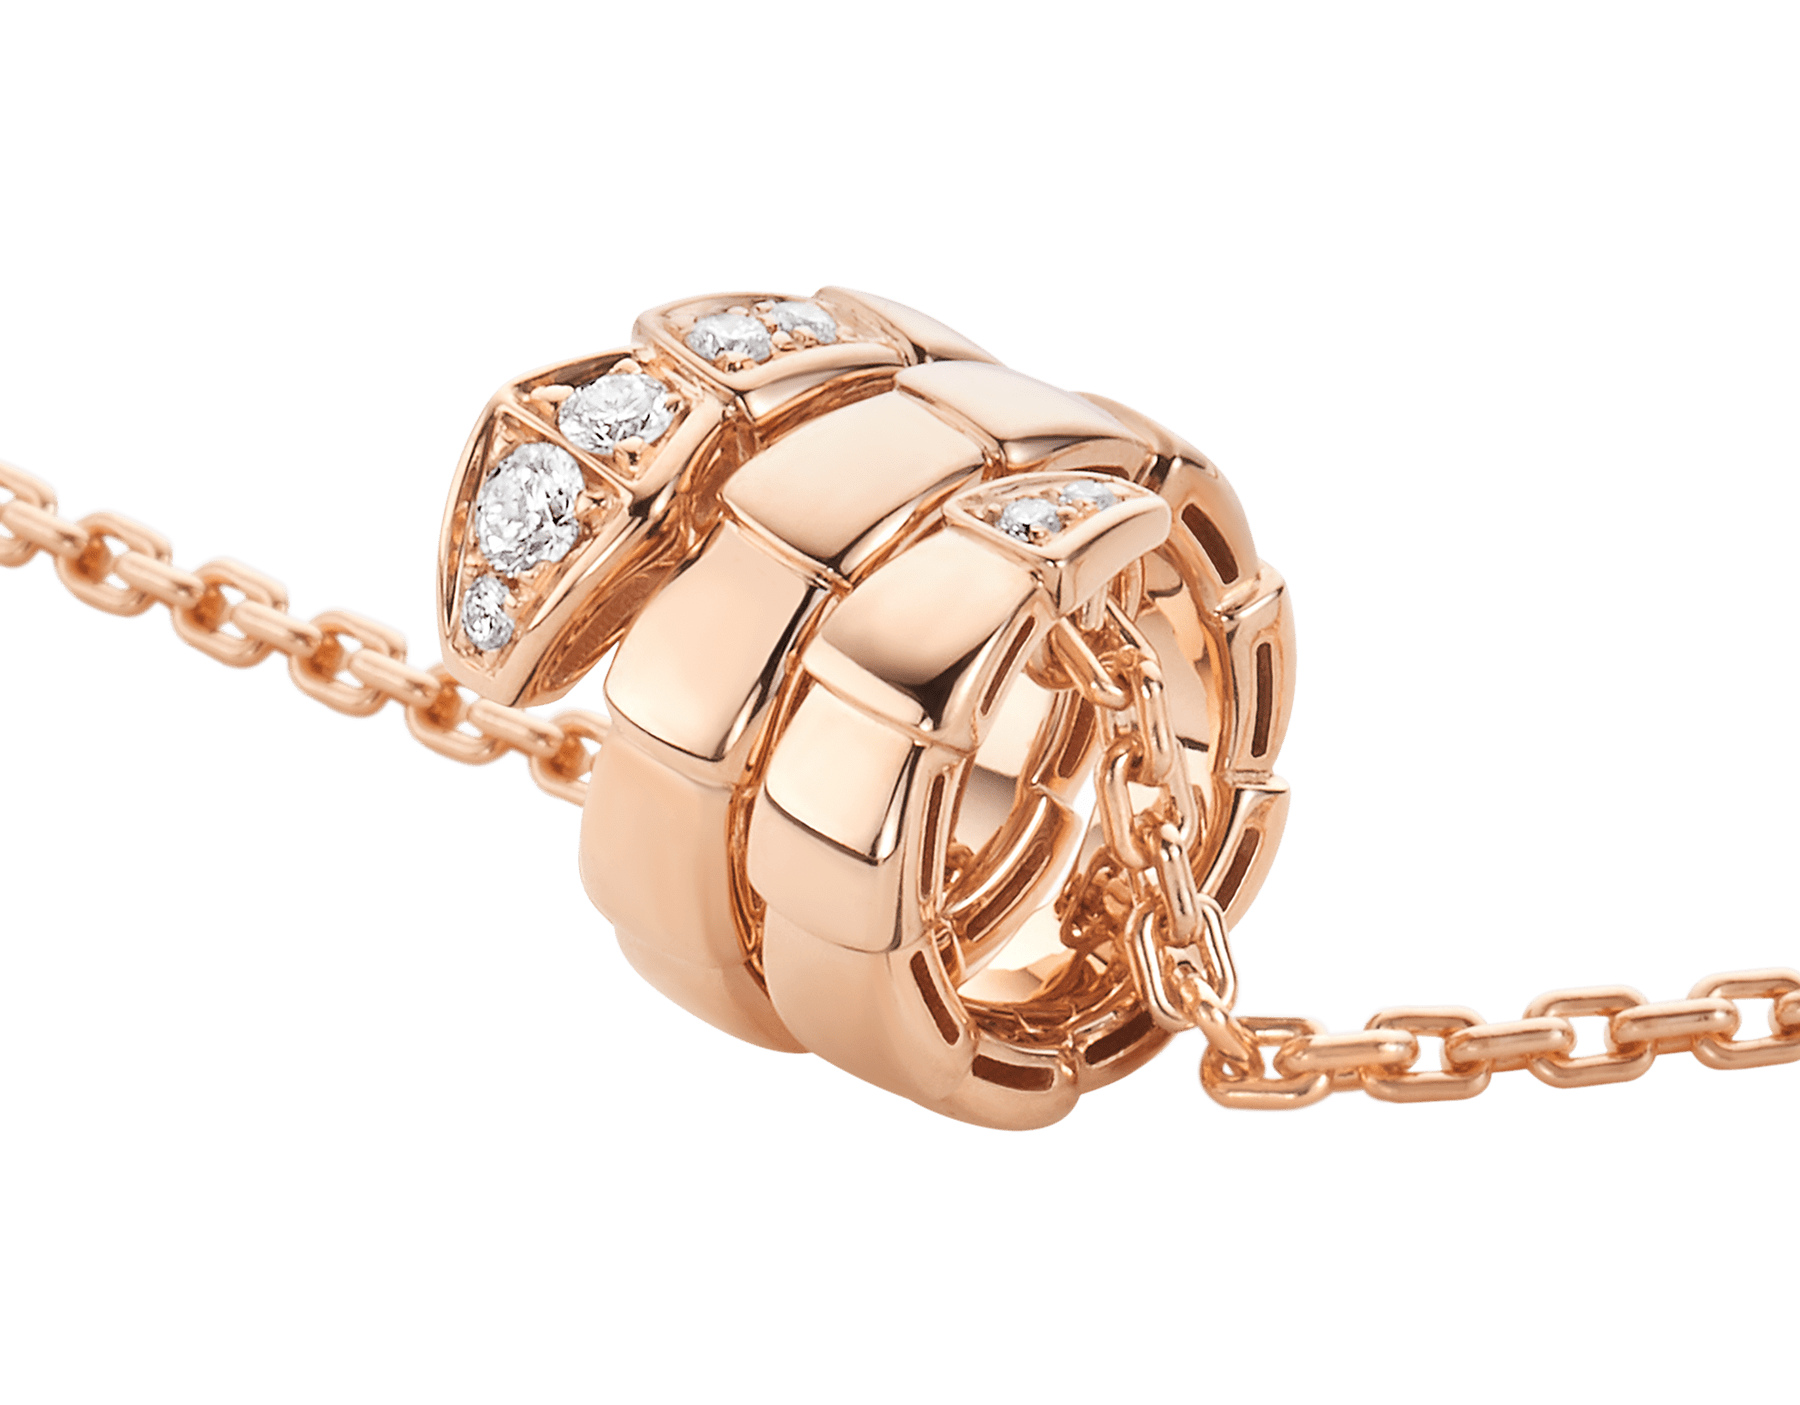 Serpenti Viper pendant necklace in 18 kt rose gold set with demi-pavé diamonds 357794 image 3